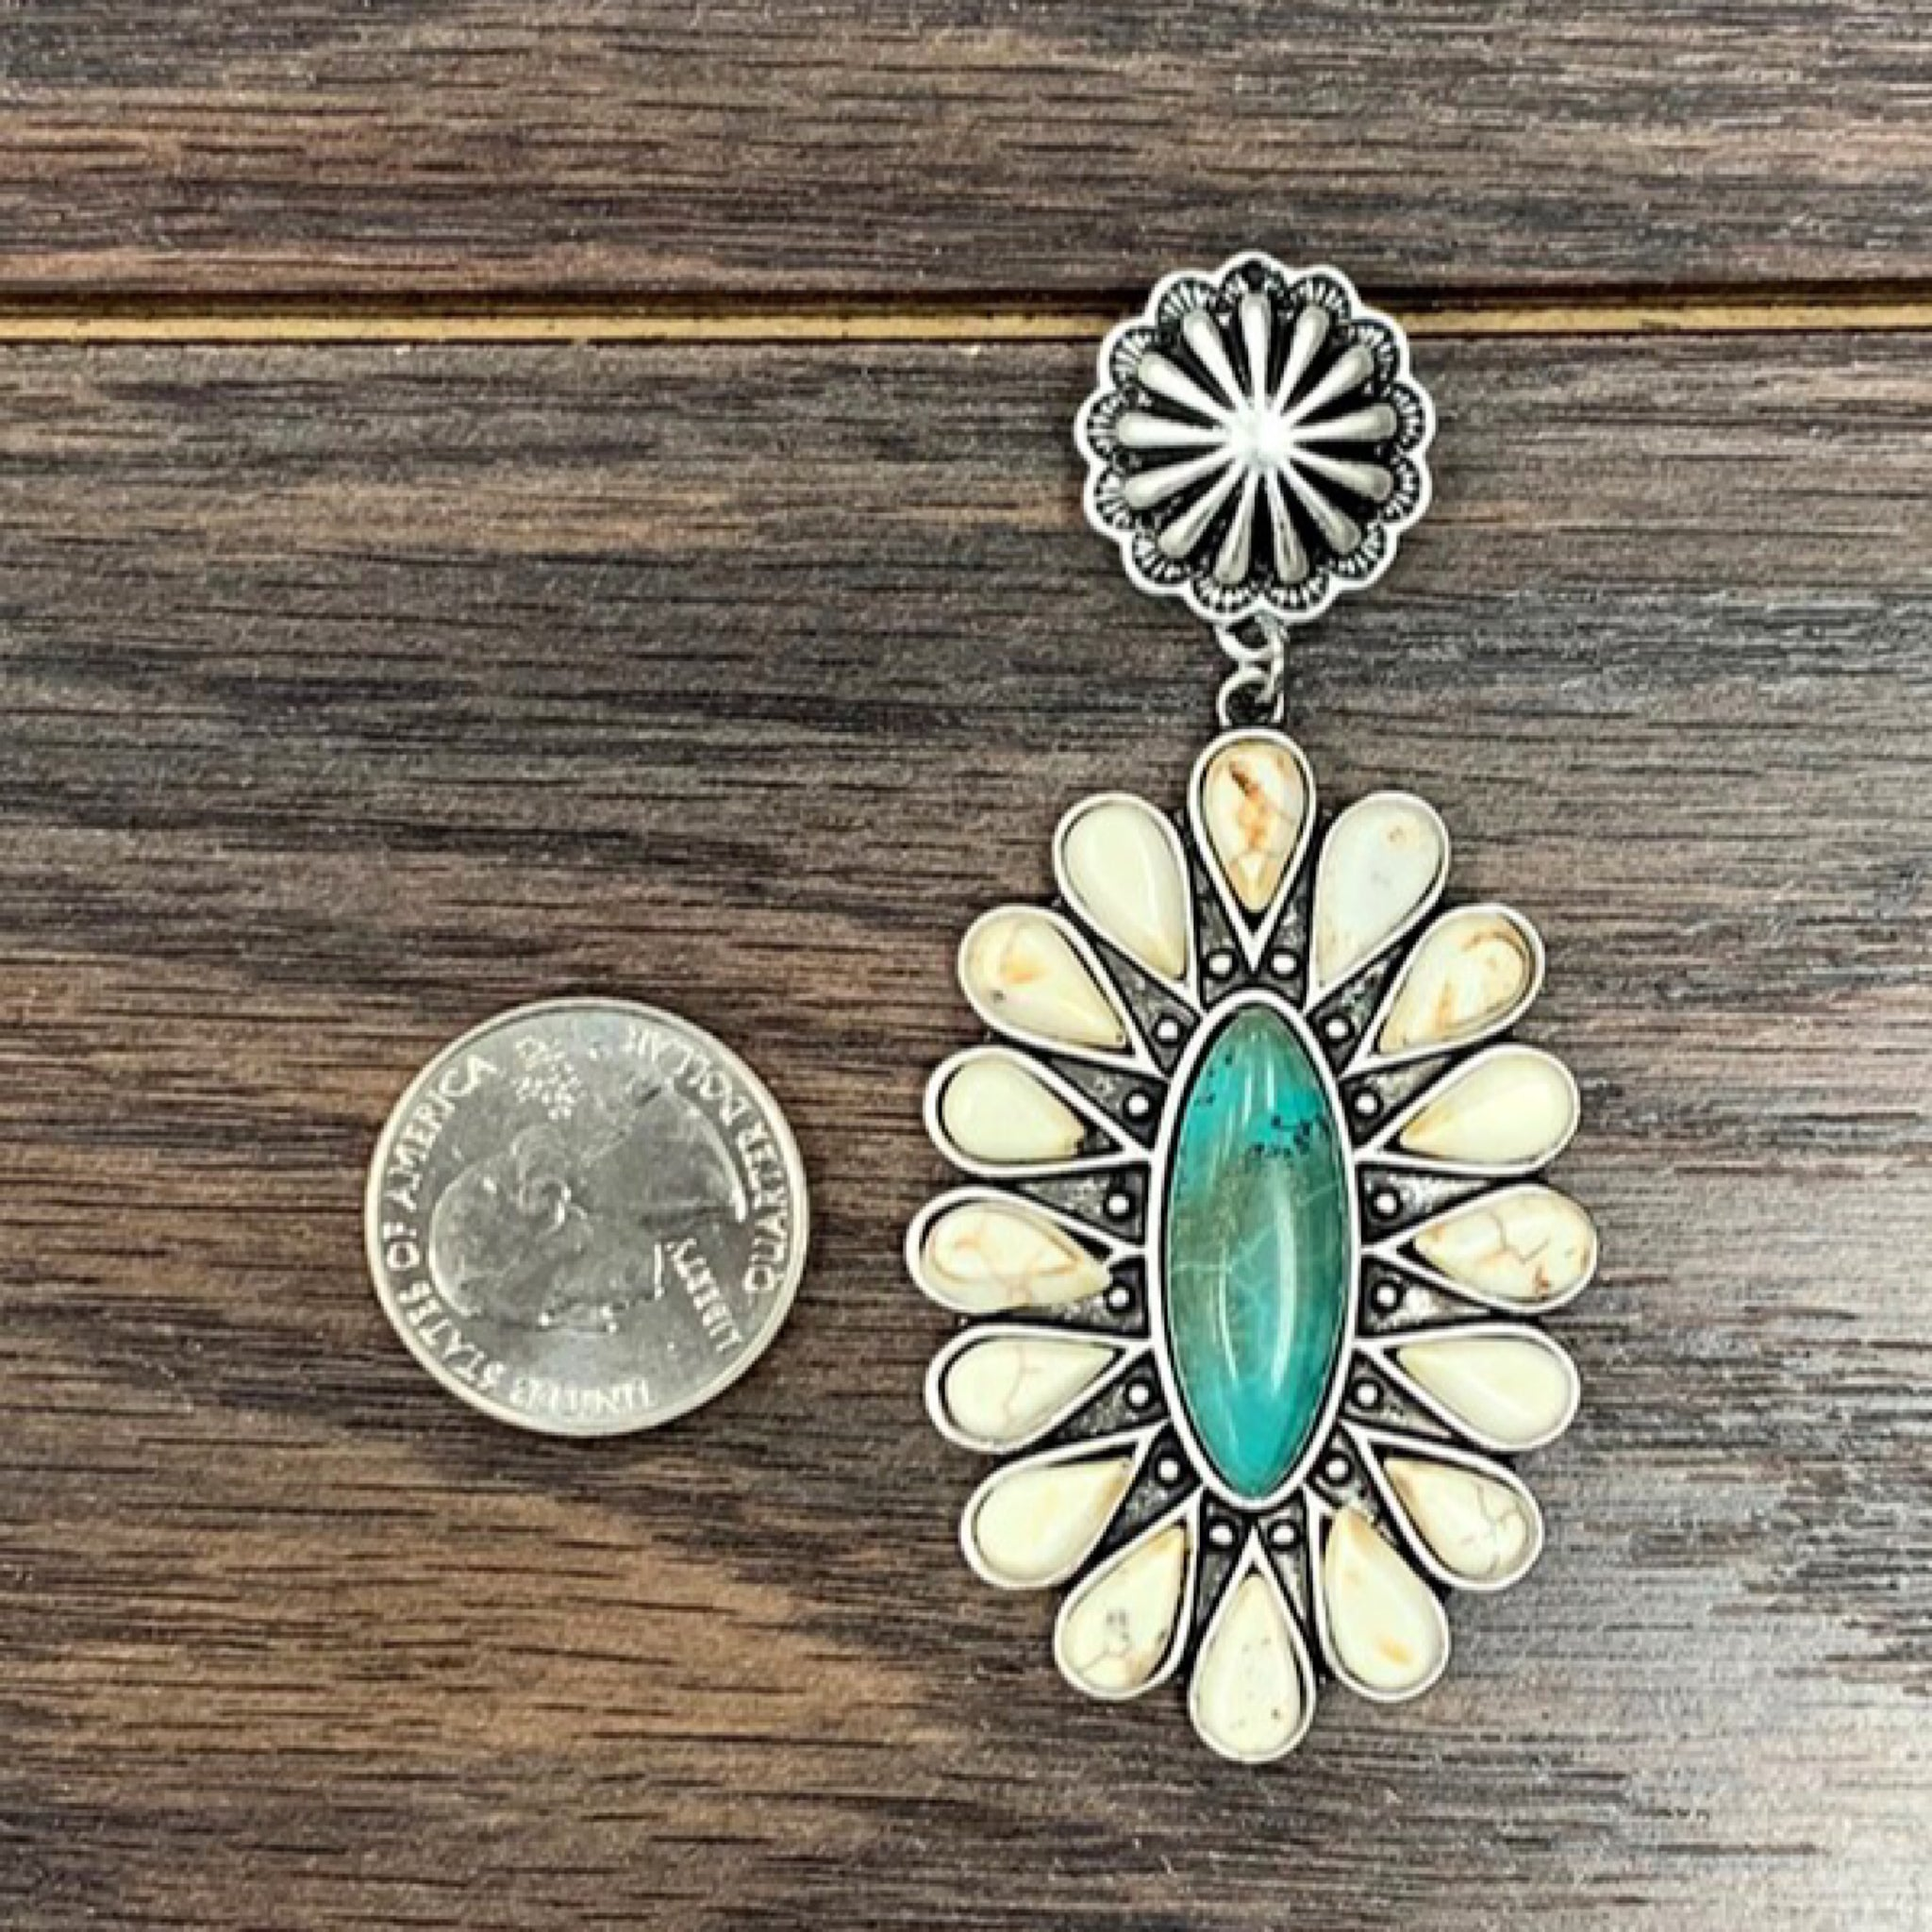 Bohemian Inspired Natural Turquoise Blossom Earrings (4515706241085)